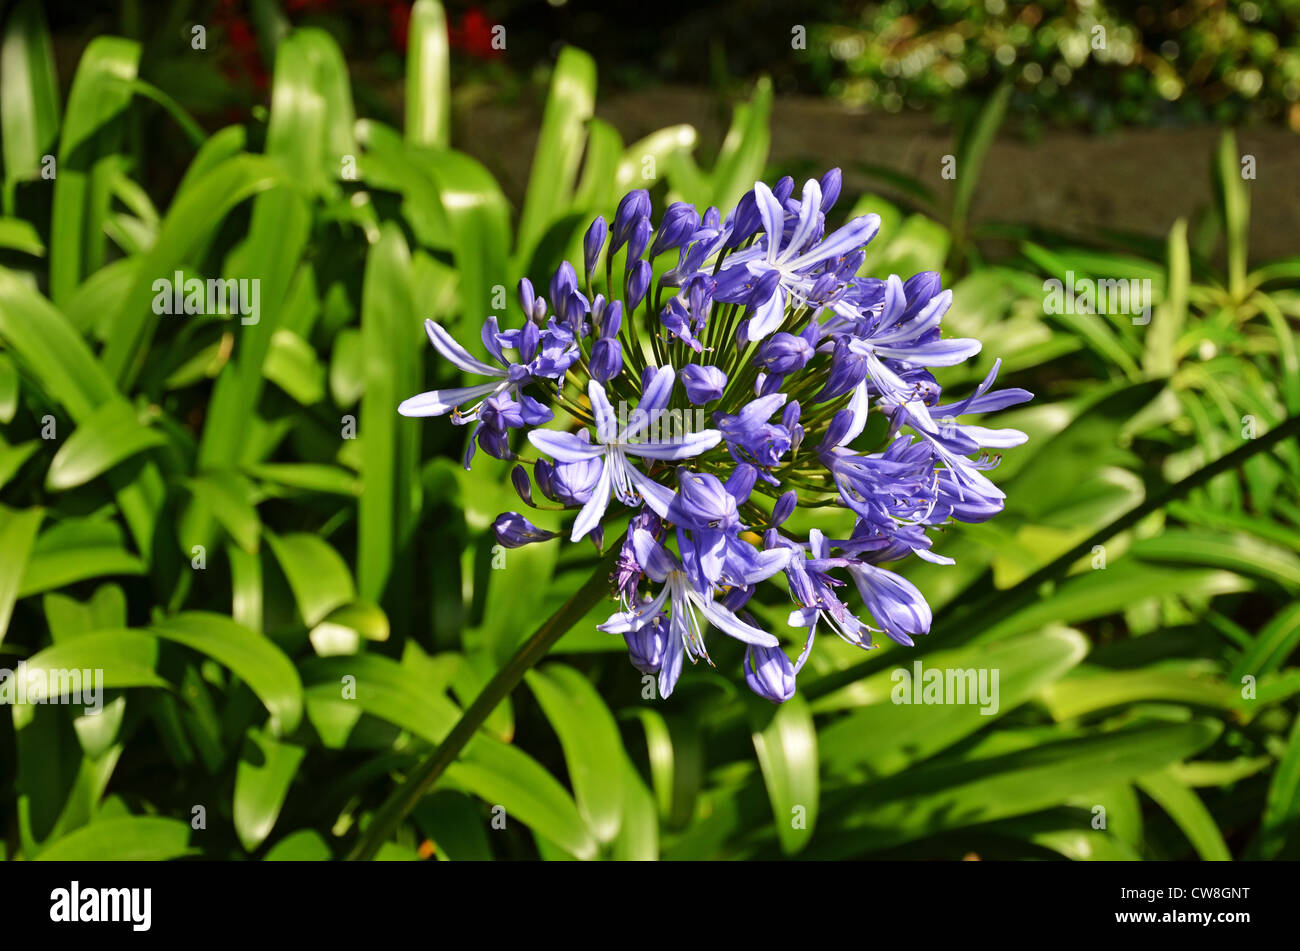 Agapanthus African Blue Lily A Hardy Perennial Stock Photo